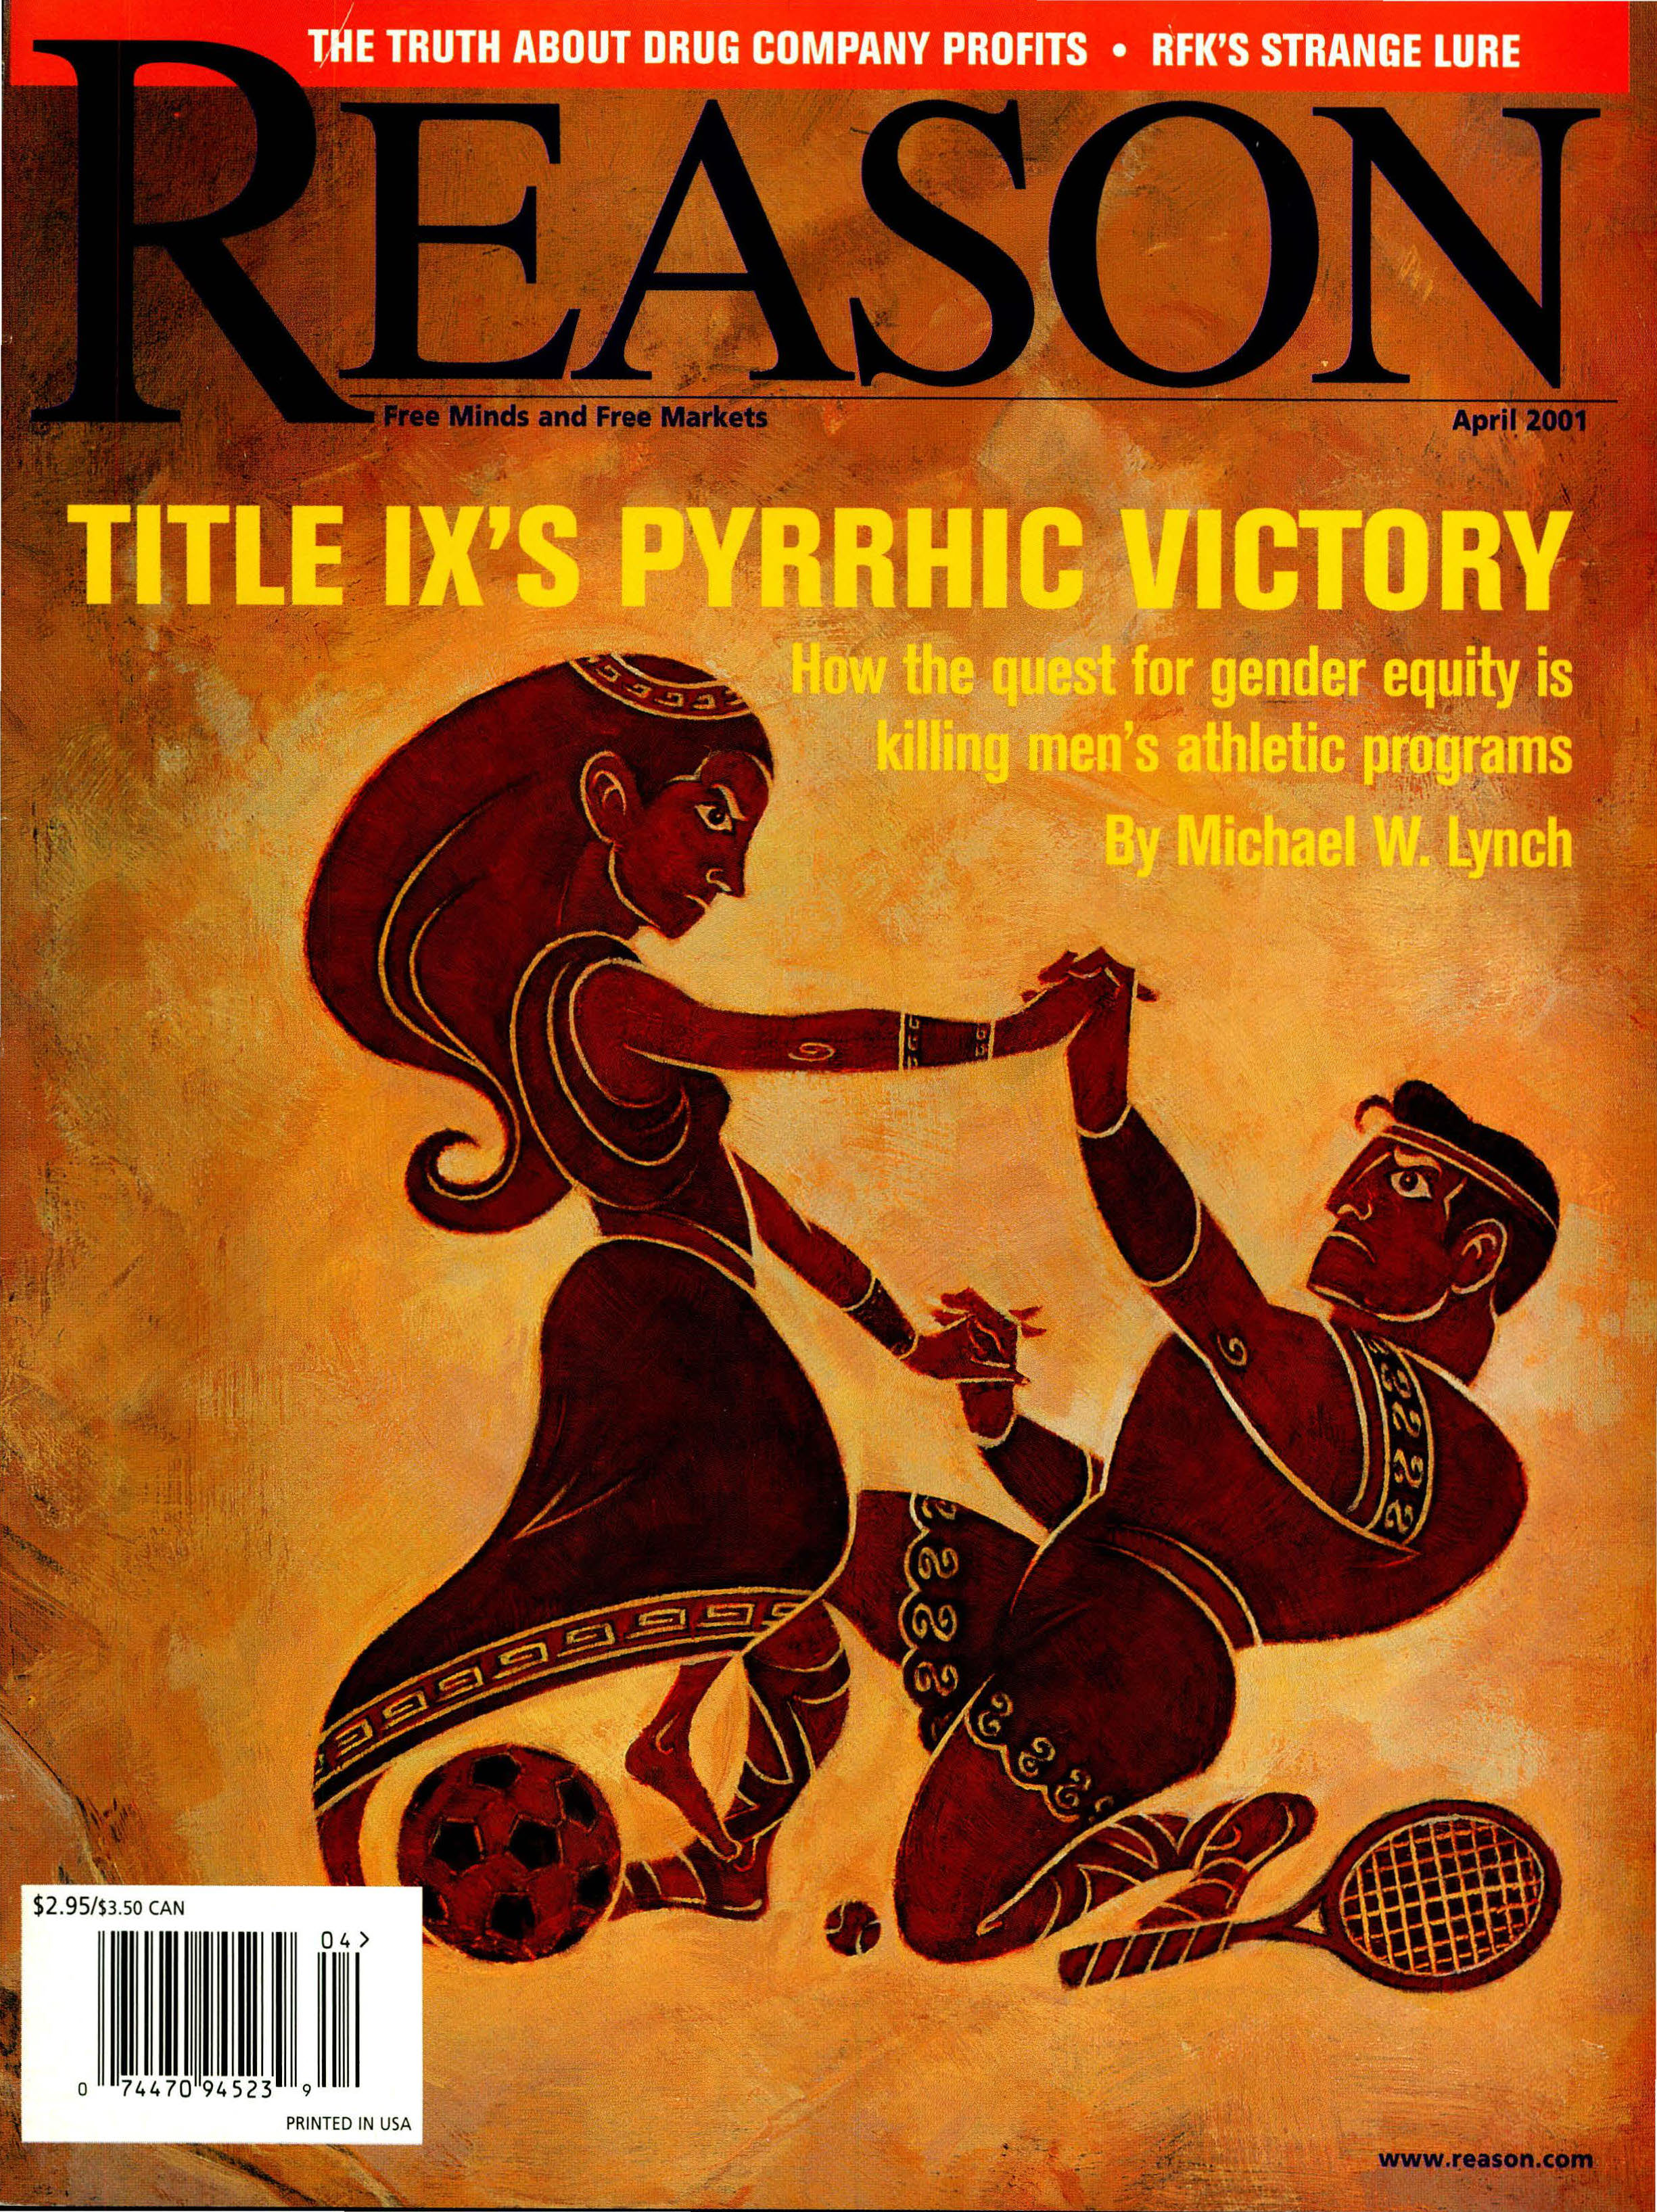 Reason Magazine, April 2001 cover image